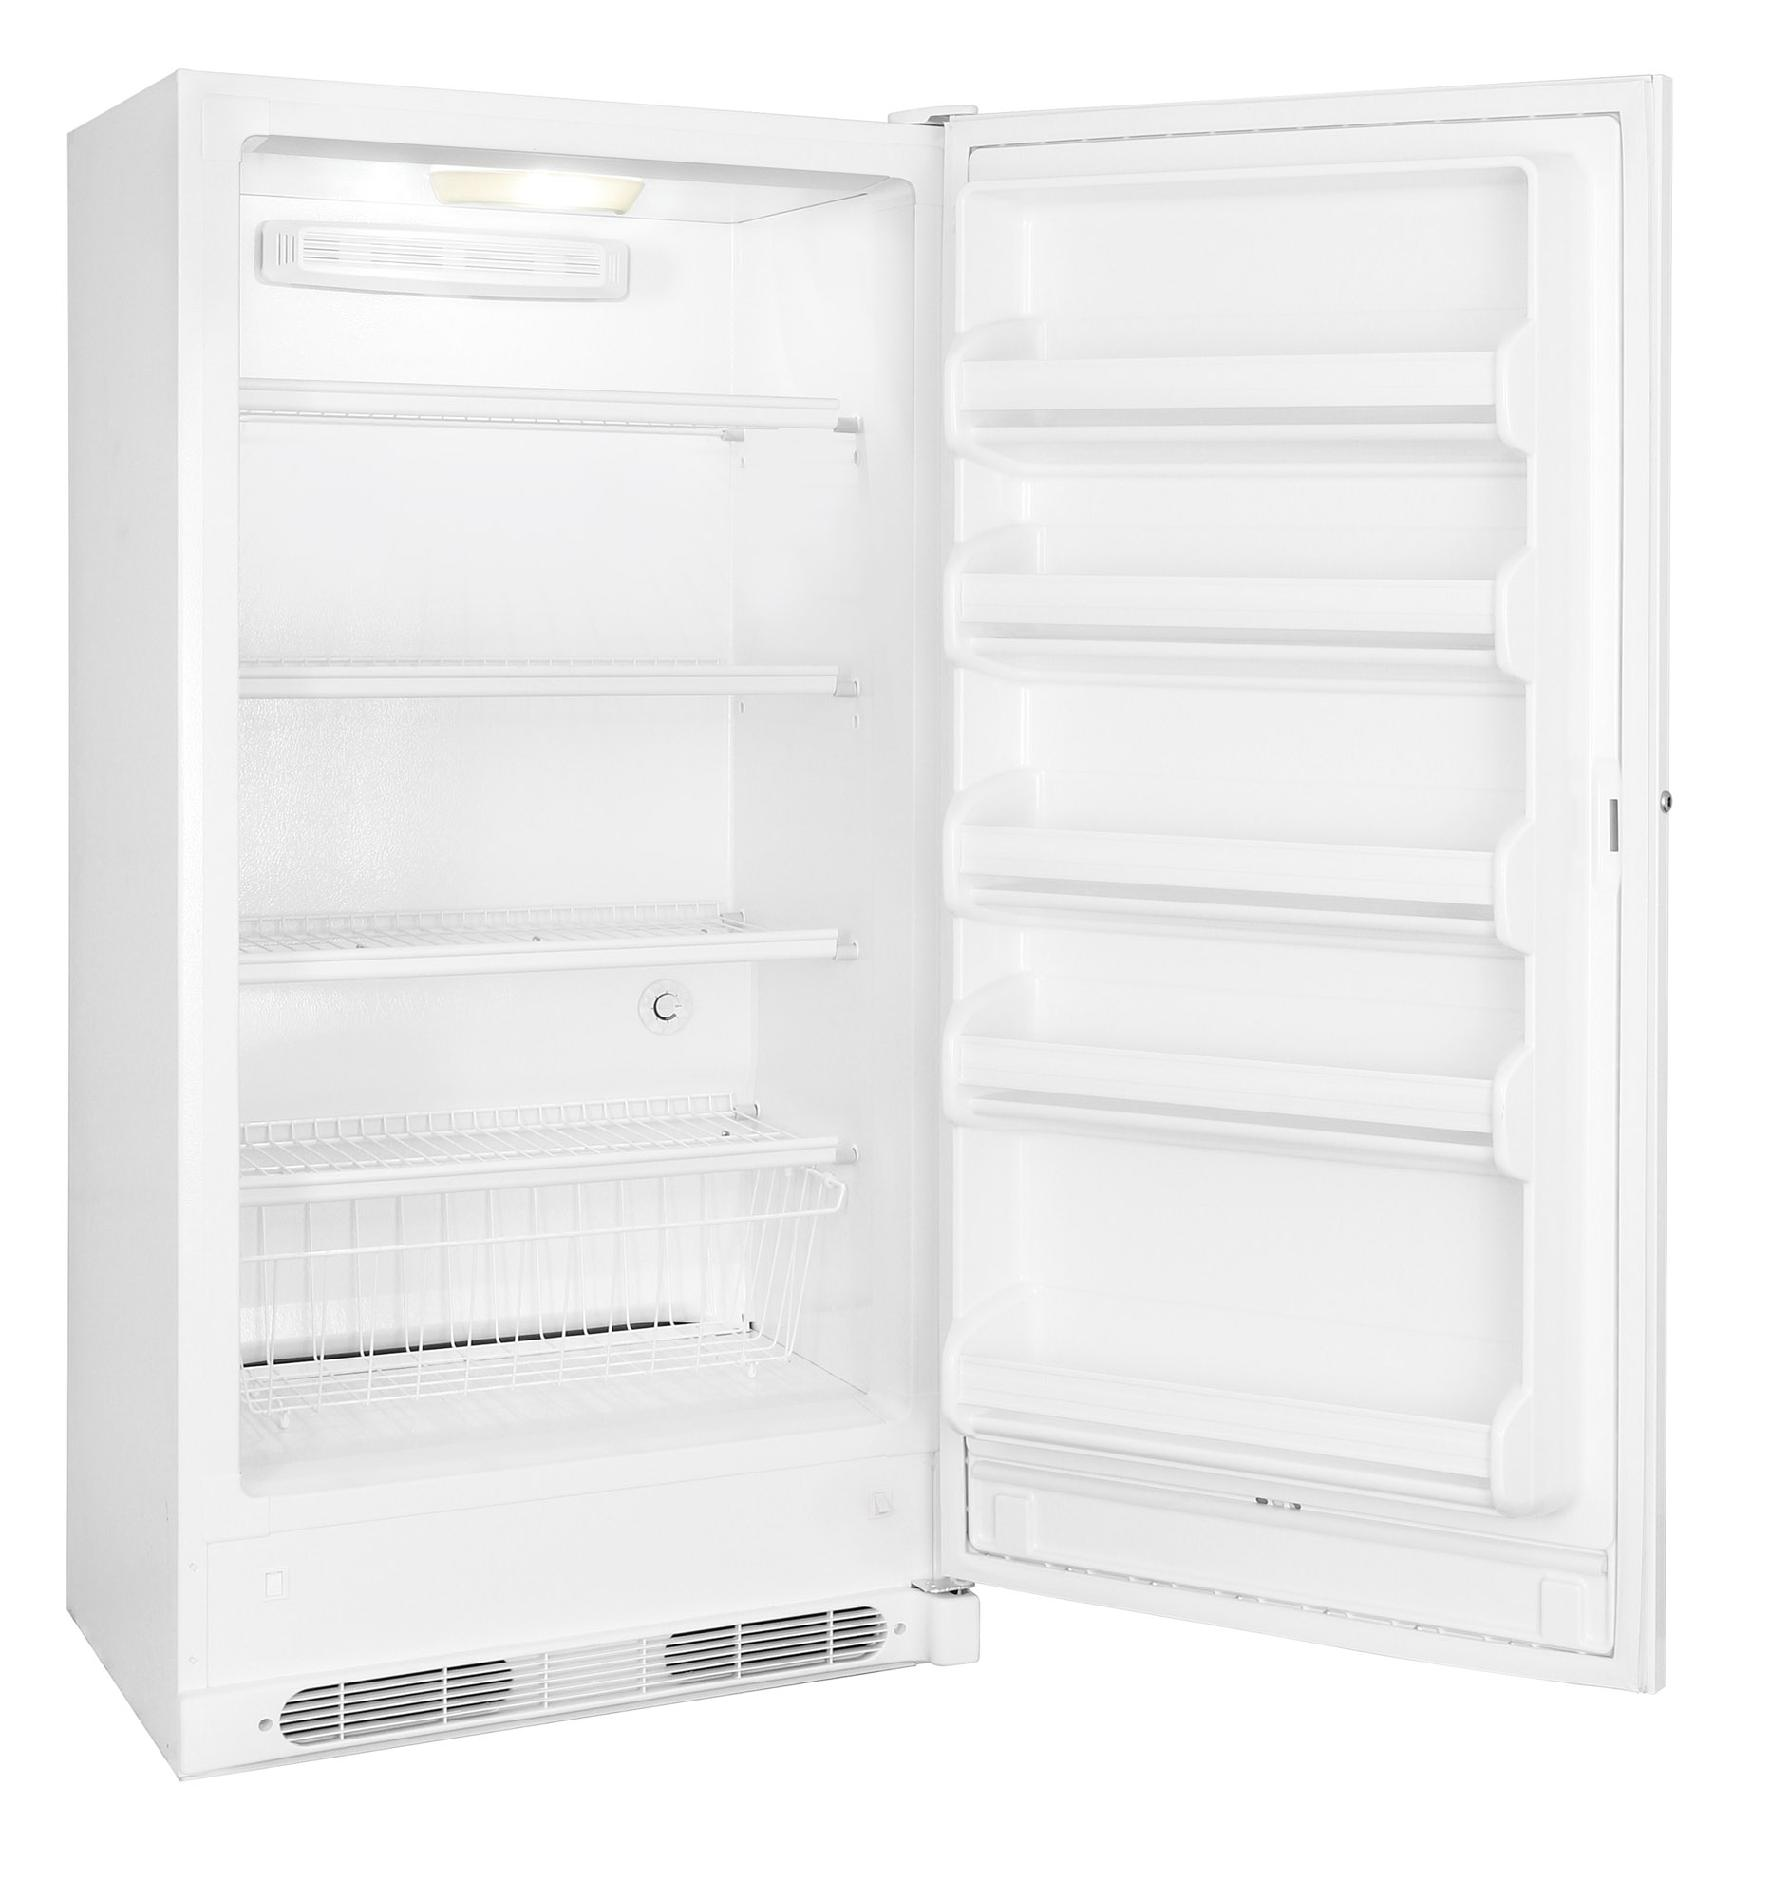 Kenmore 16.6 cu. ft. Upright Freezer - White